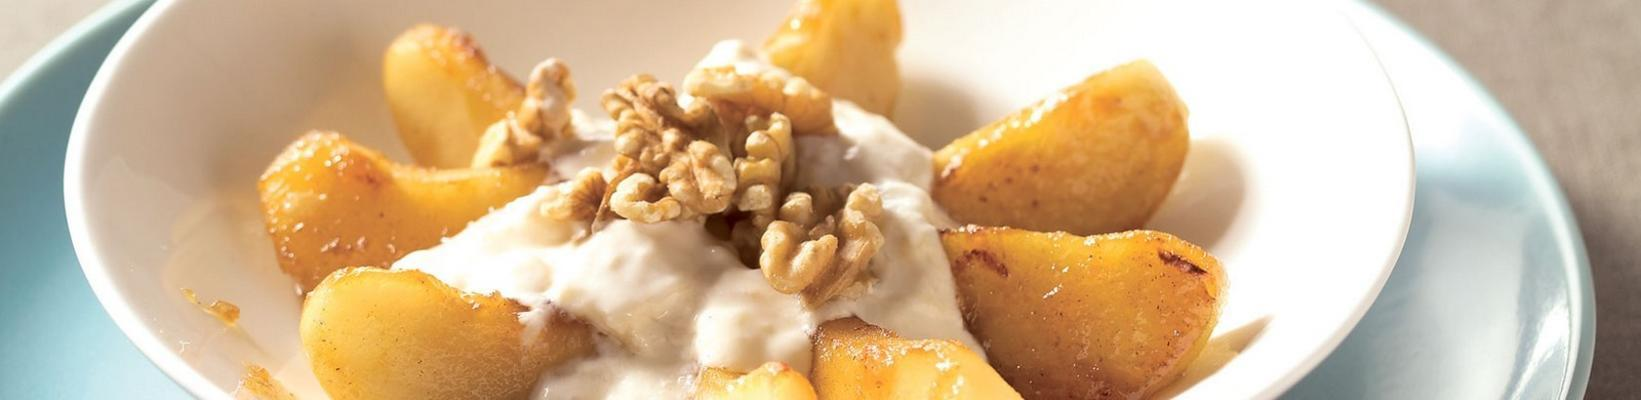 baked apple with banana and walnuts